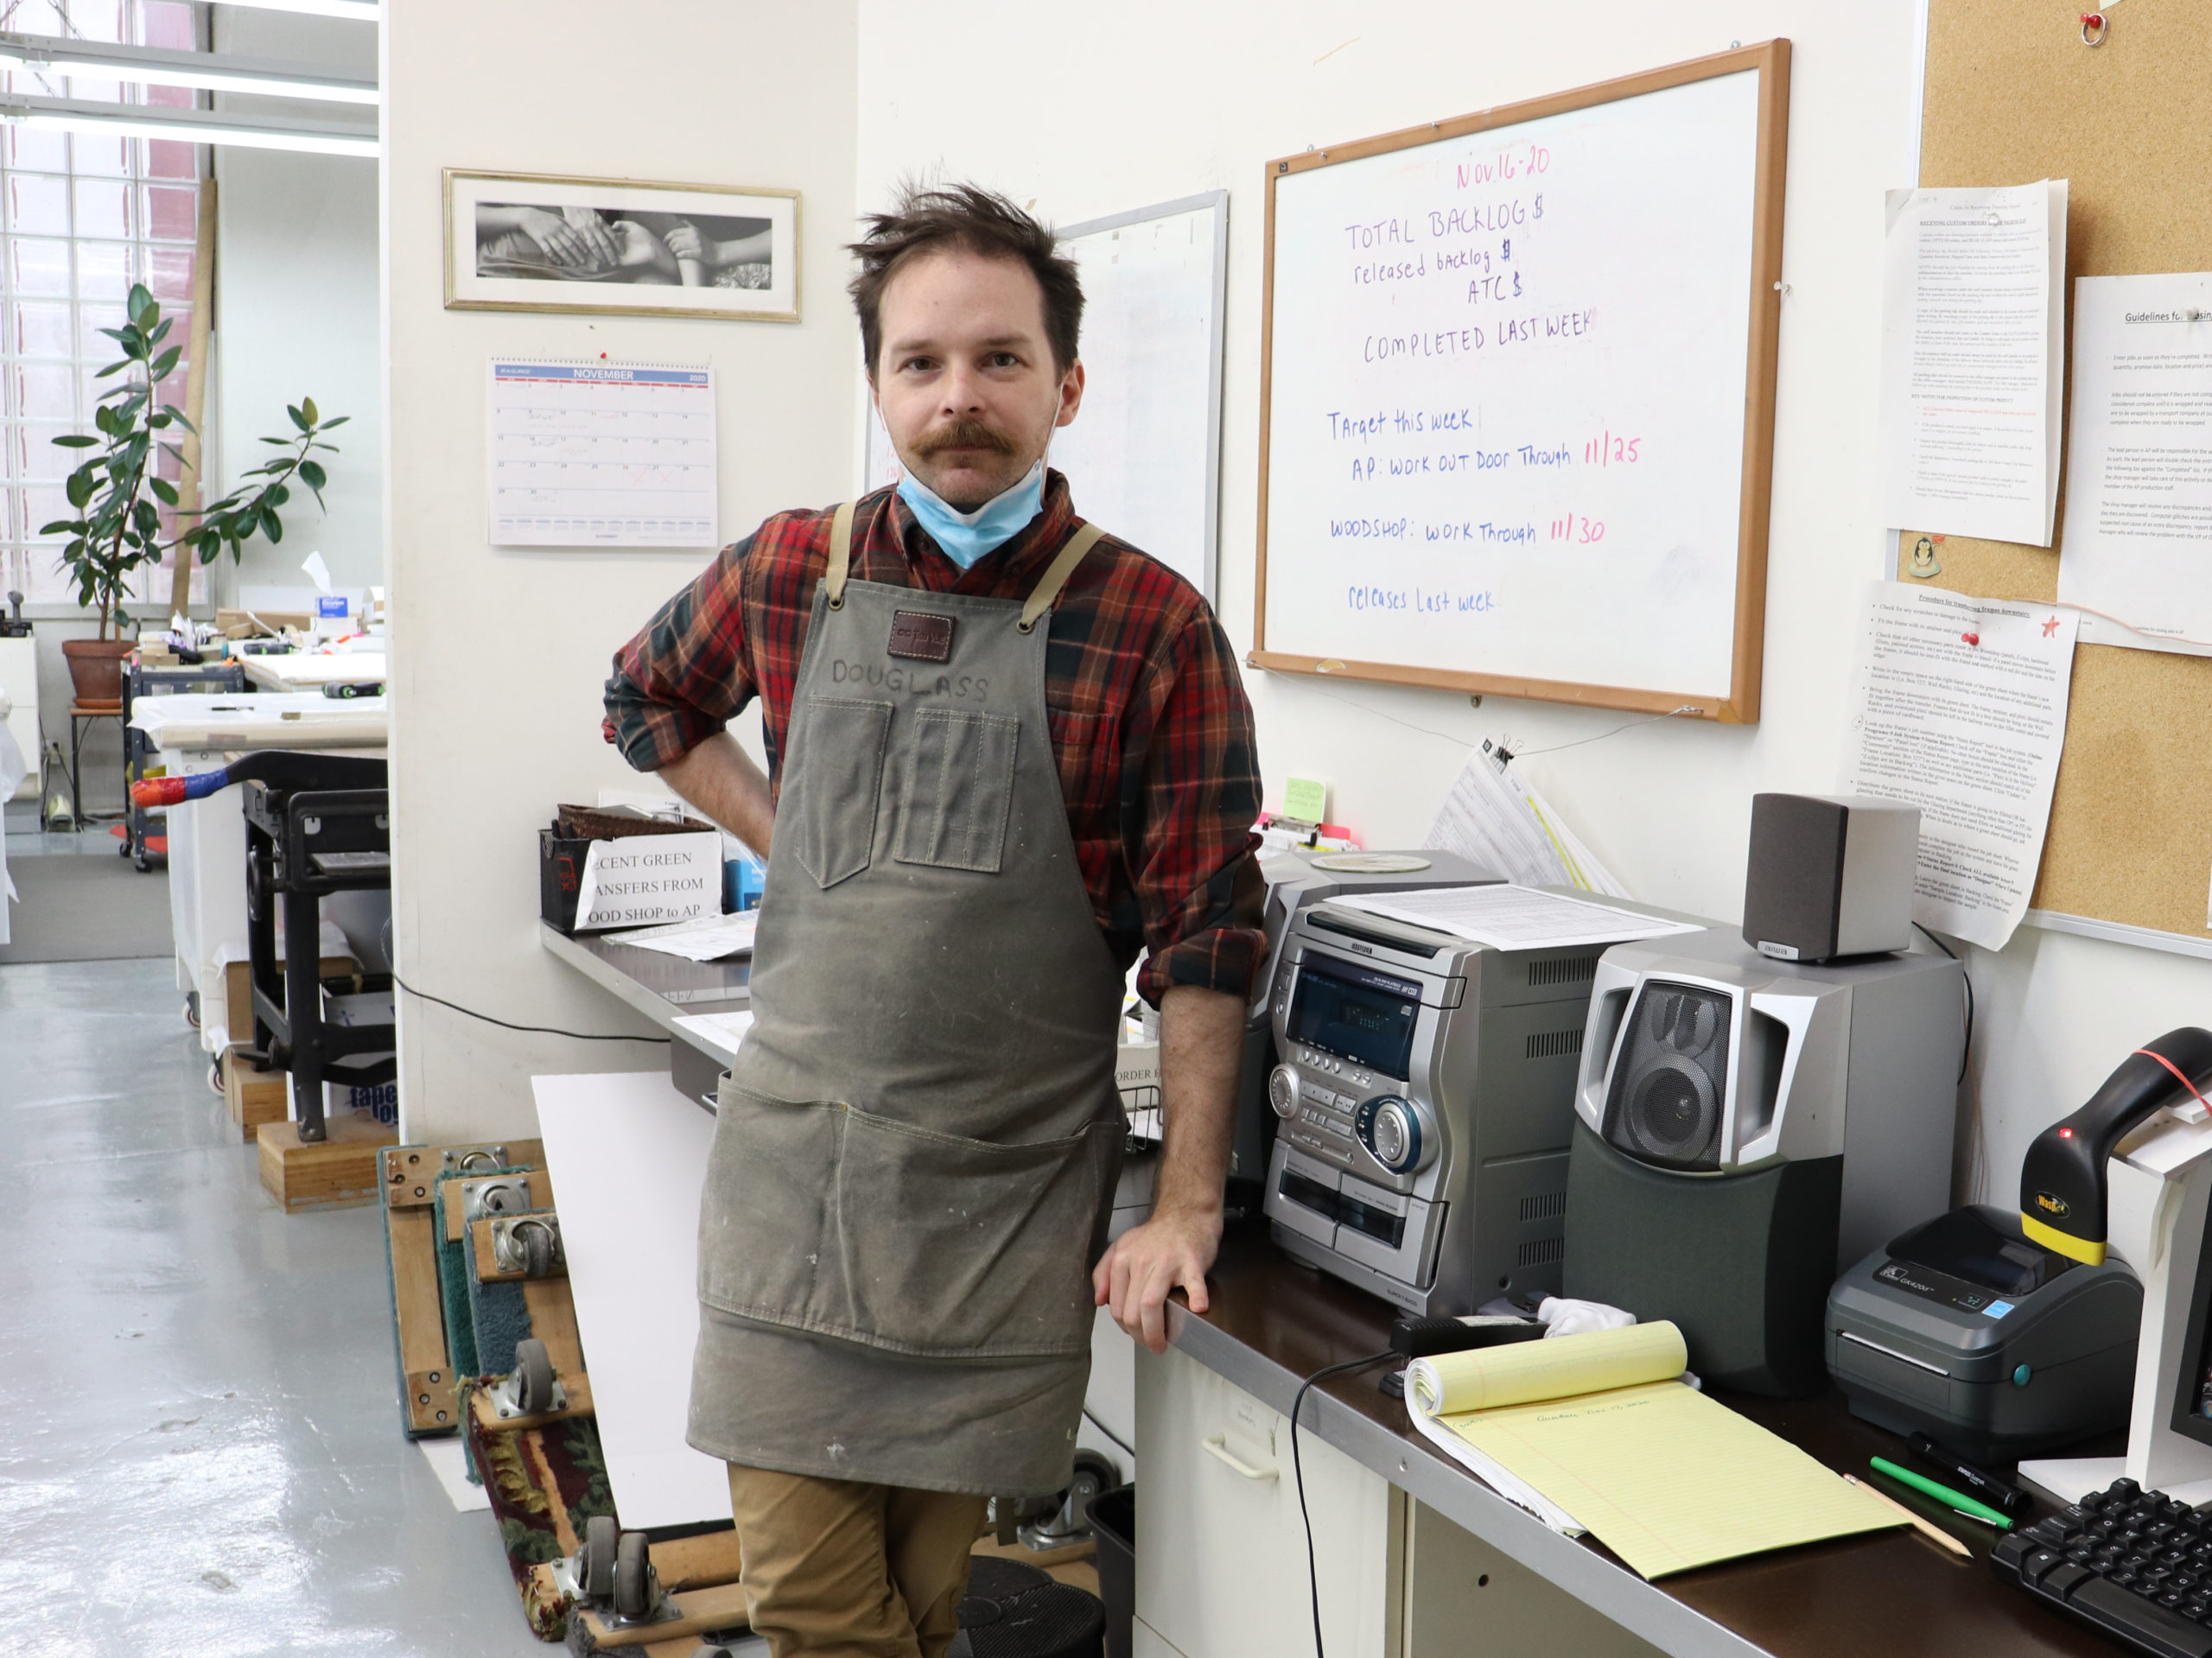 Ryan with his stereo in our art preservation studio.